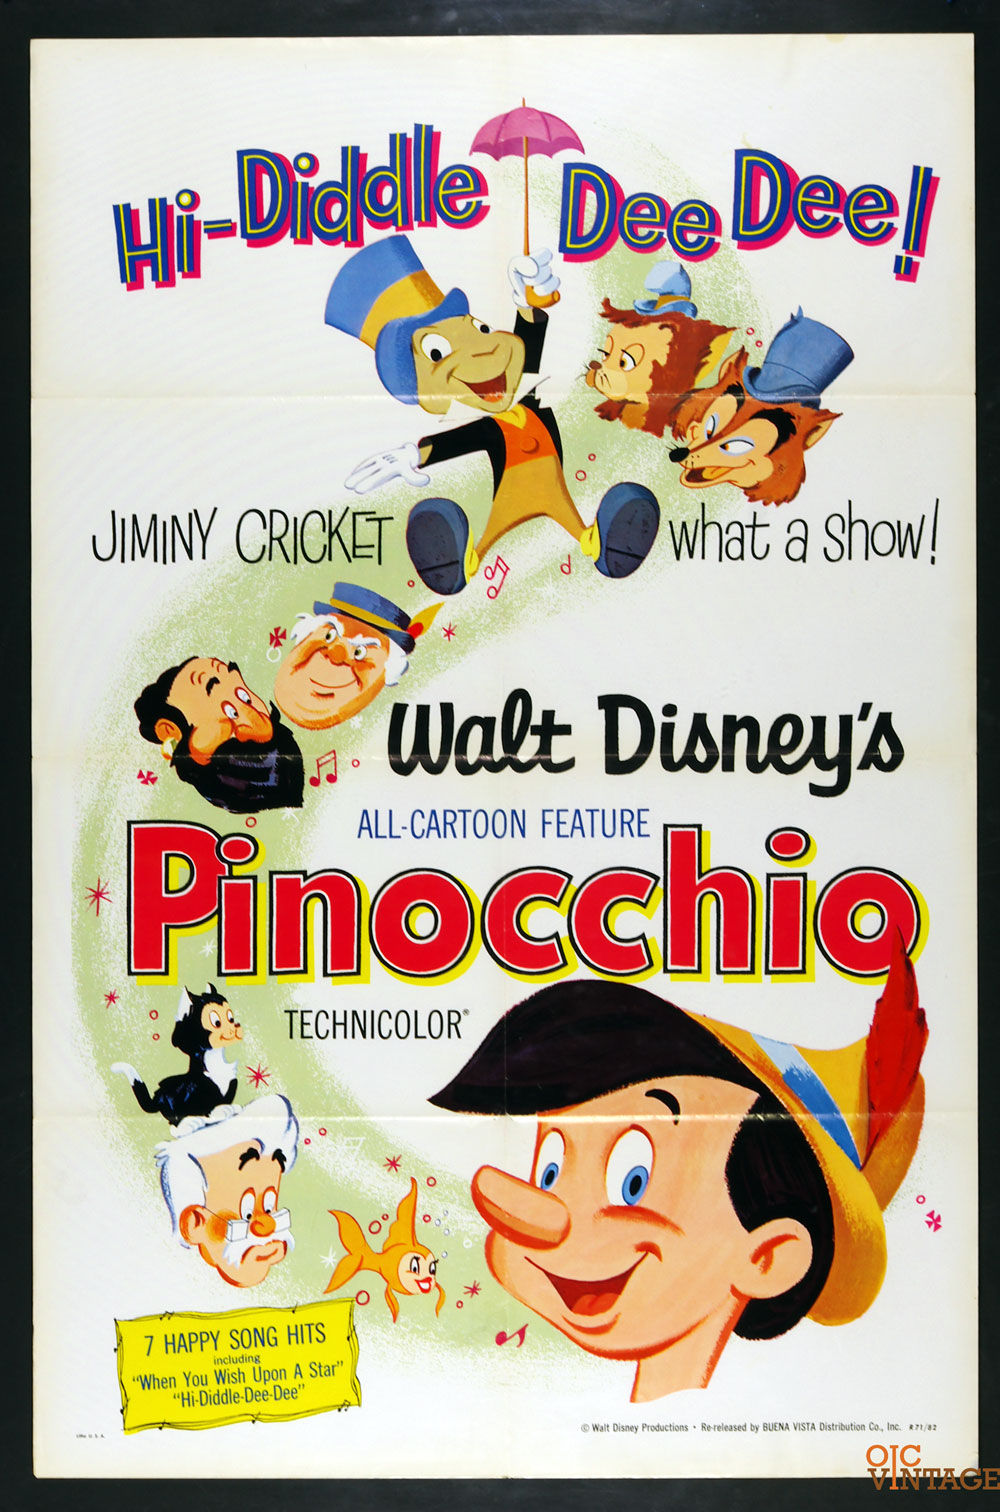 Pinocchio Movie Poster R1971 26 x 39 1 Sheet